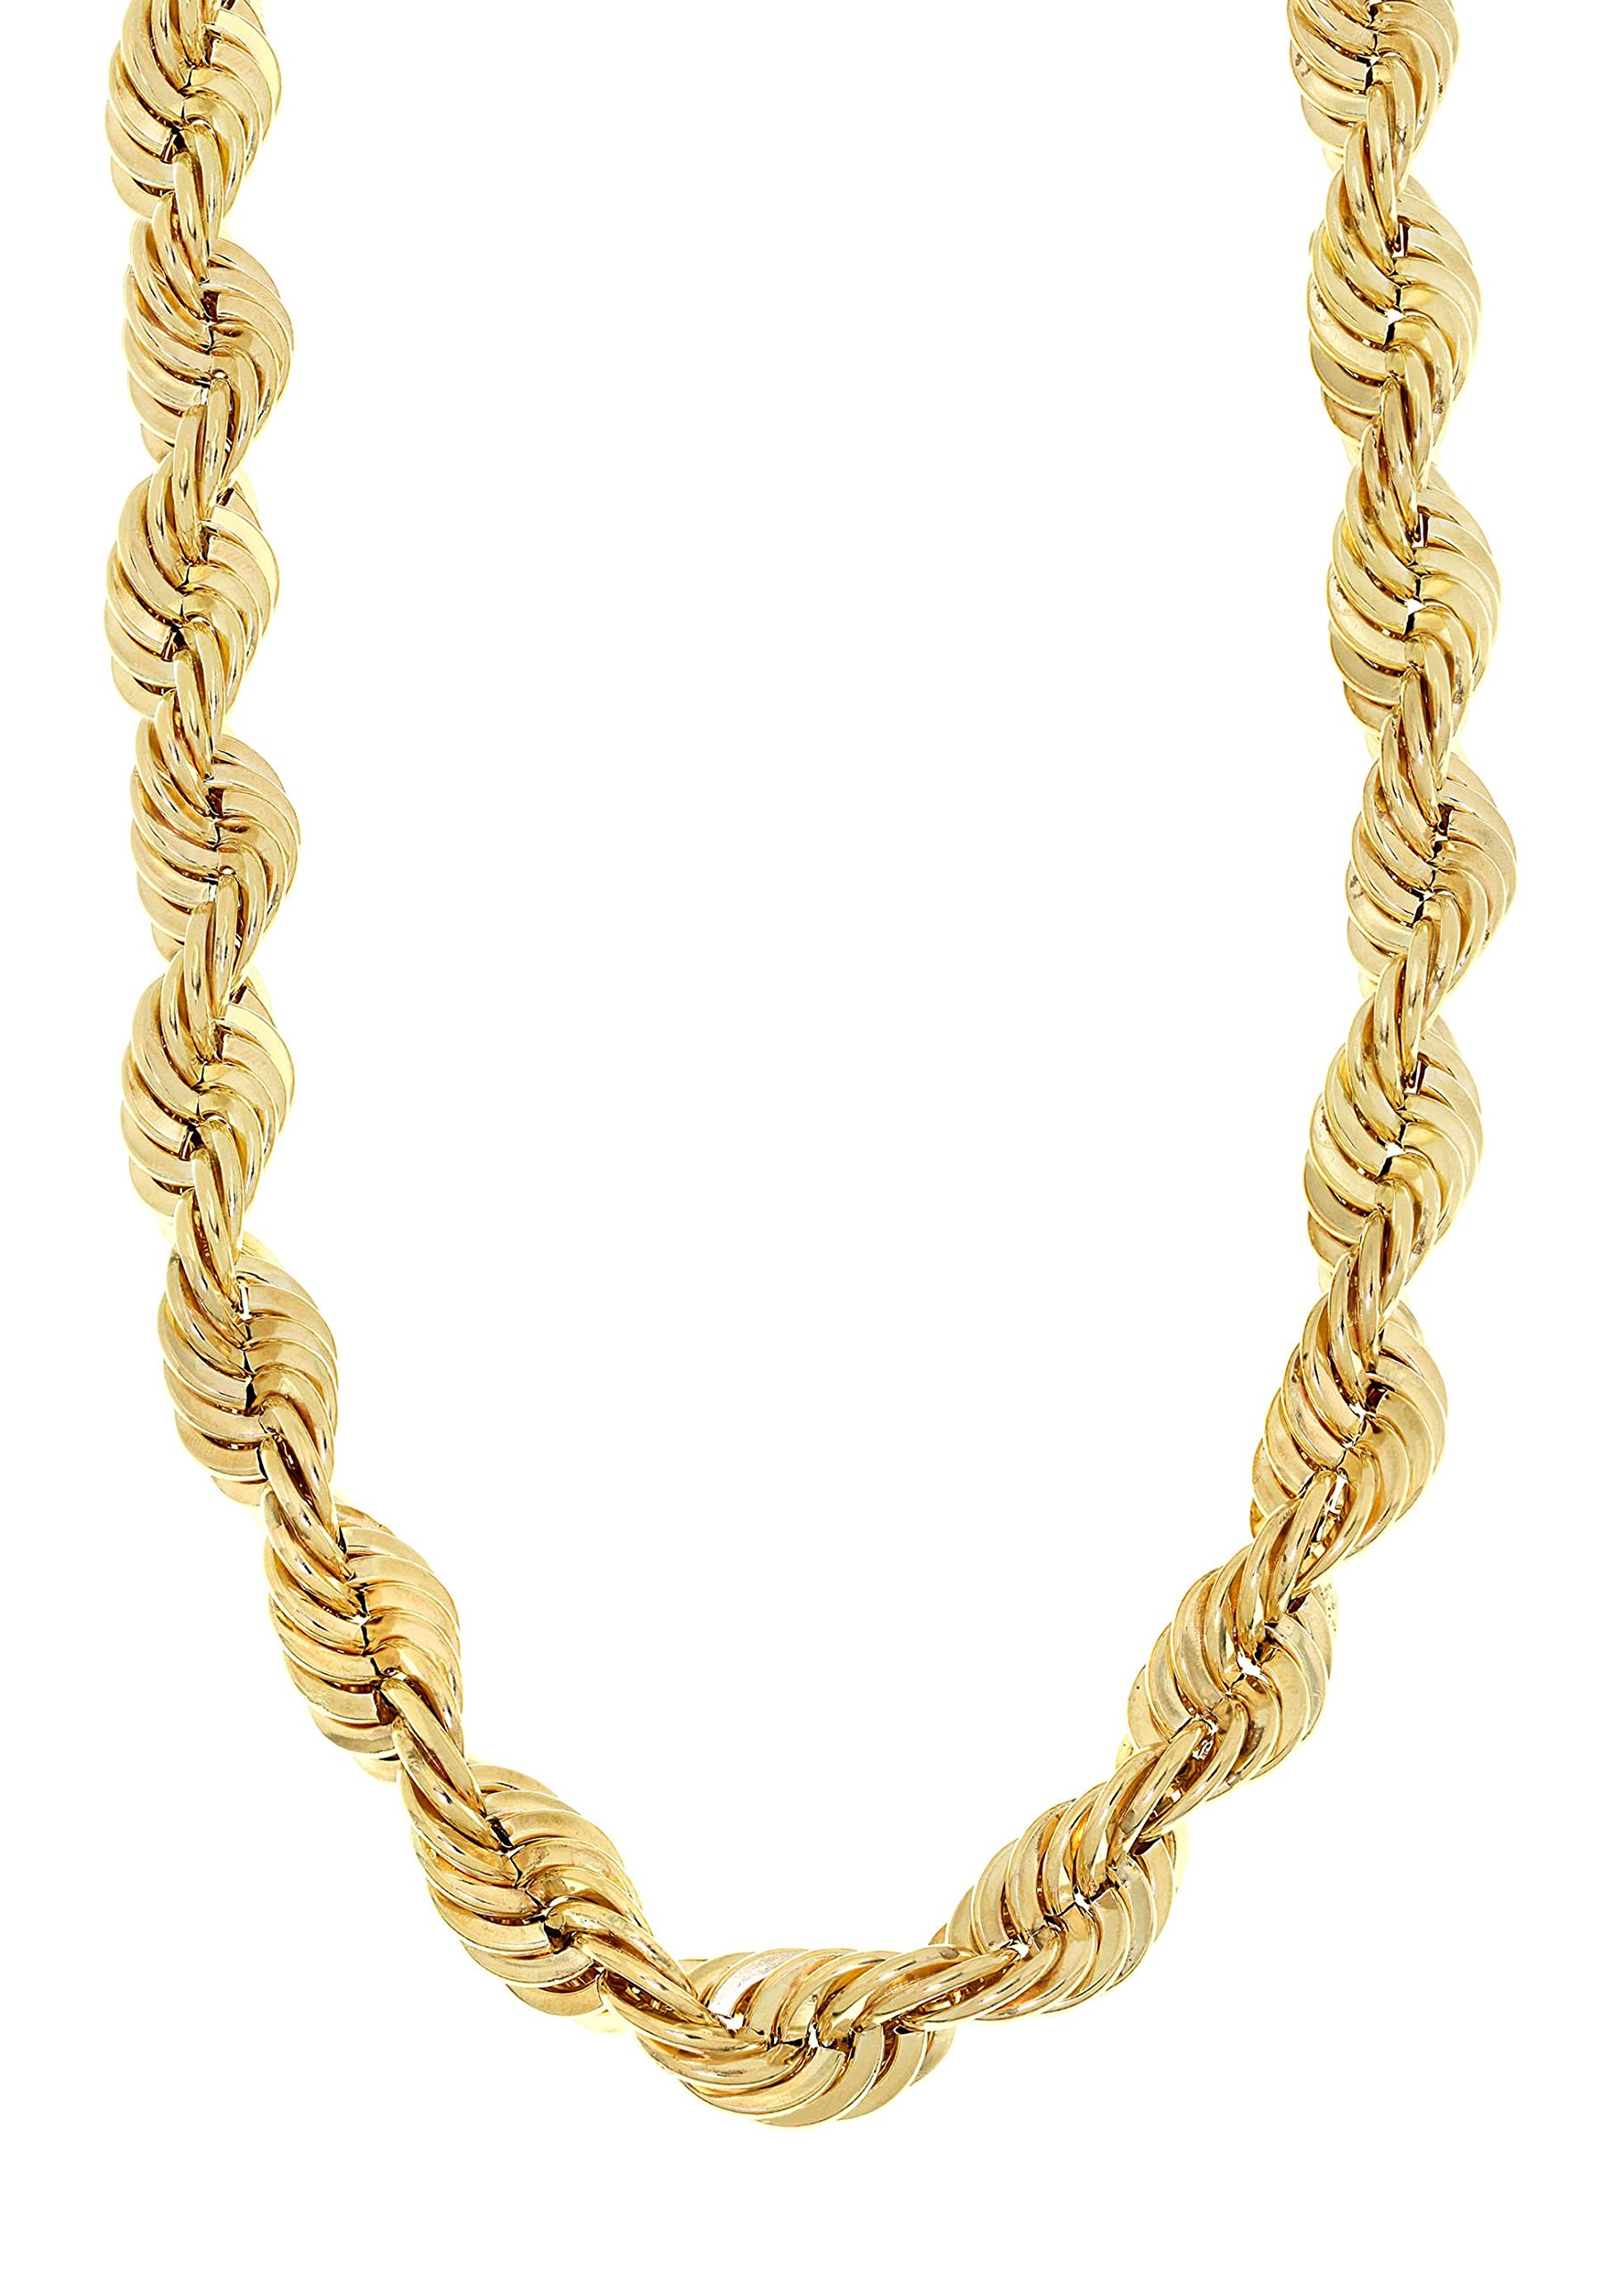 MCS Jewelry 10 Karat Yellow Gold Hollow Rope Chain Necklace 8.0mm 10K OVER 22 Grams (Length: 24'')